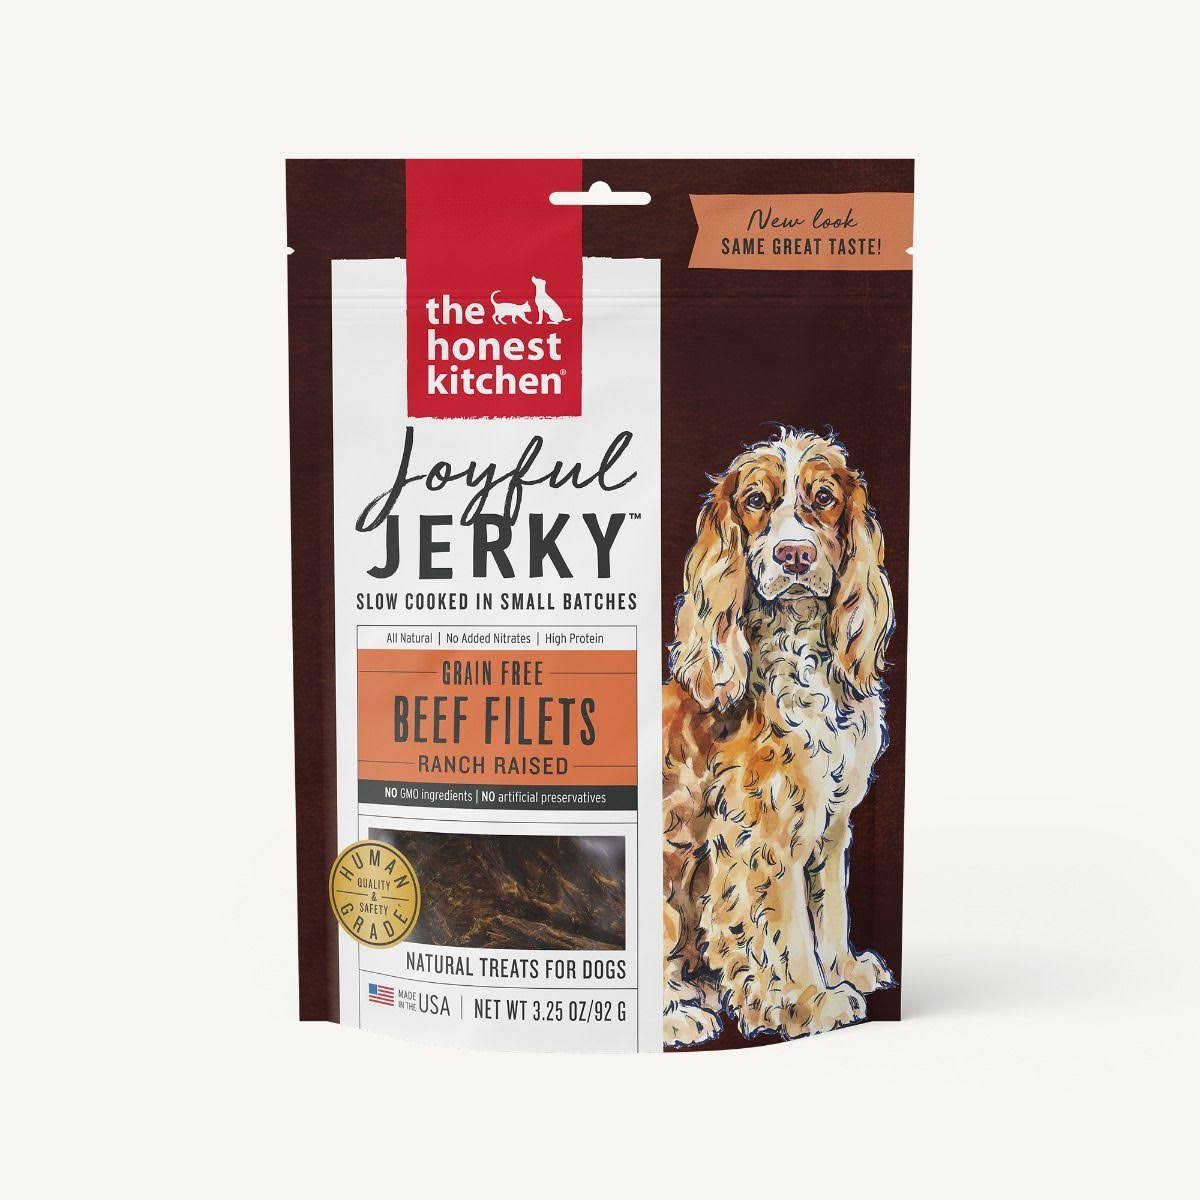 The Honest Kitchen Joyful Jerky Filets - Beef